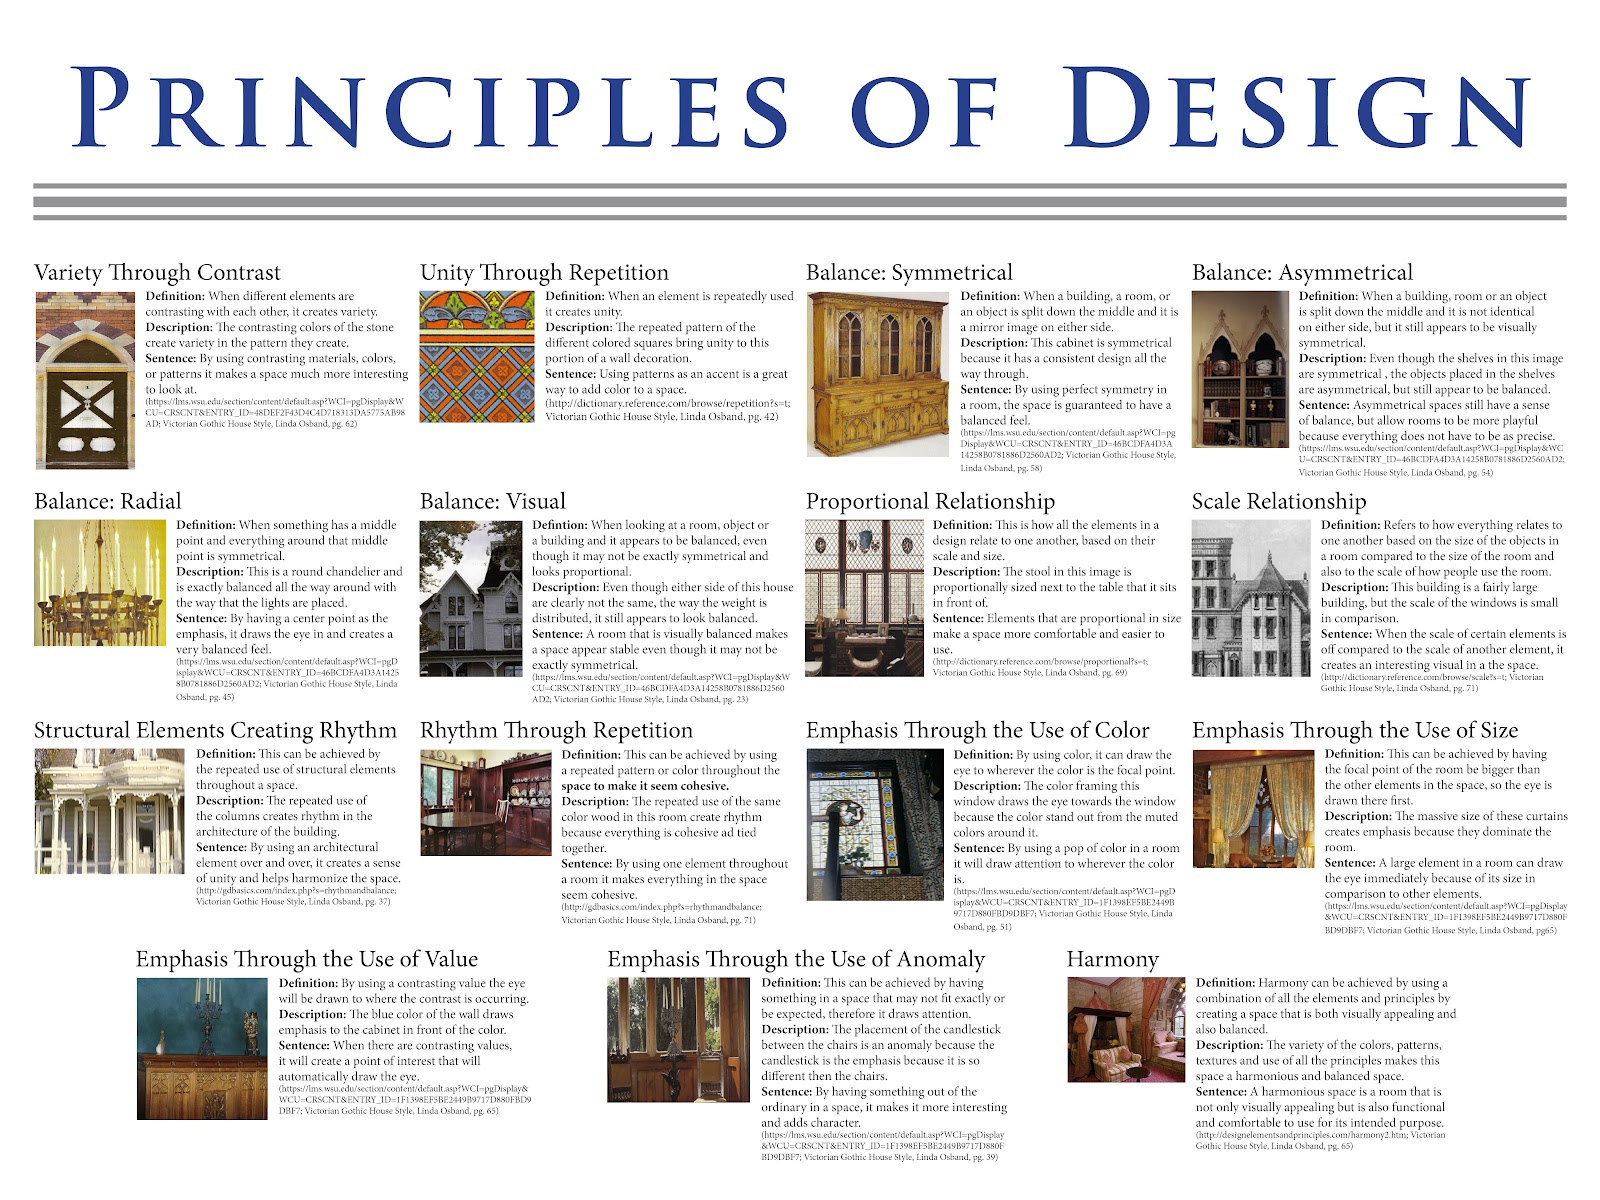 Annie borges design portfolio principles of design for Art decoration pdf